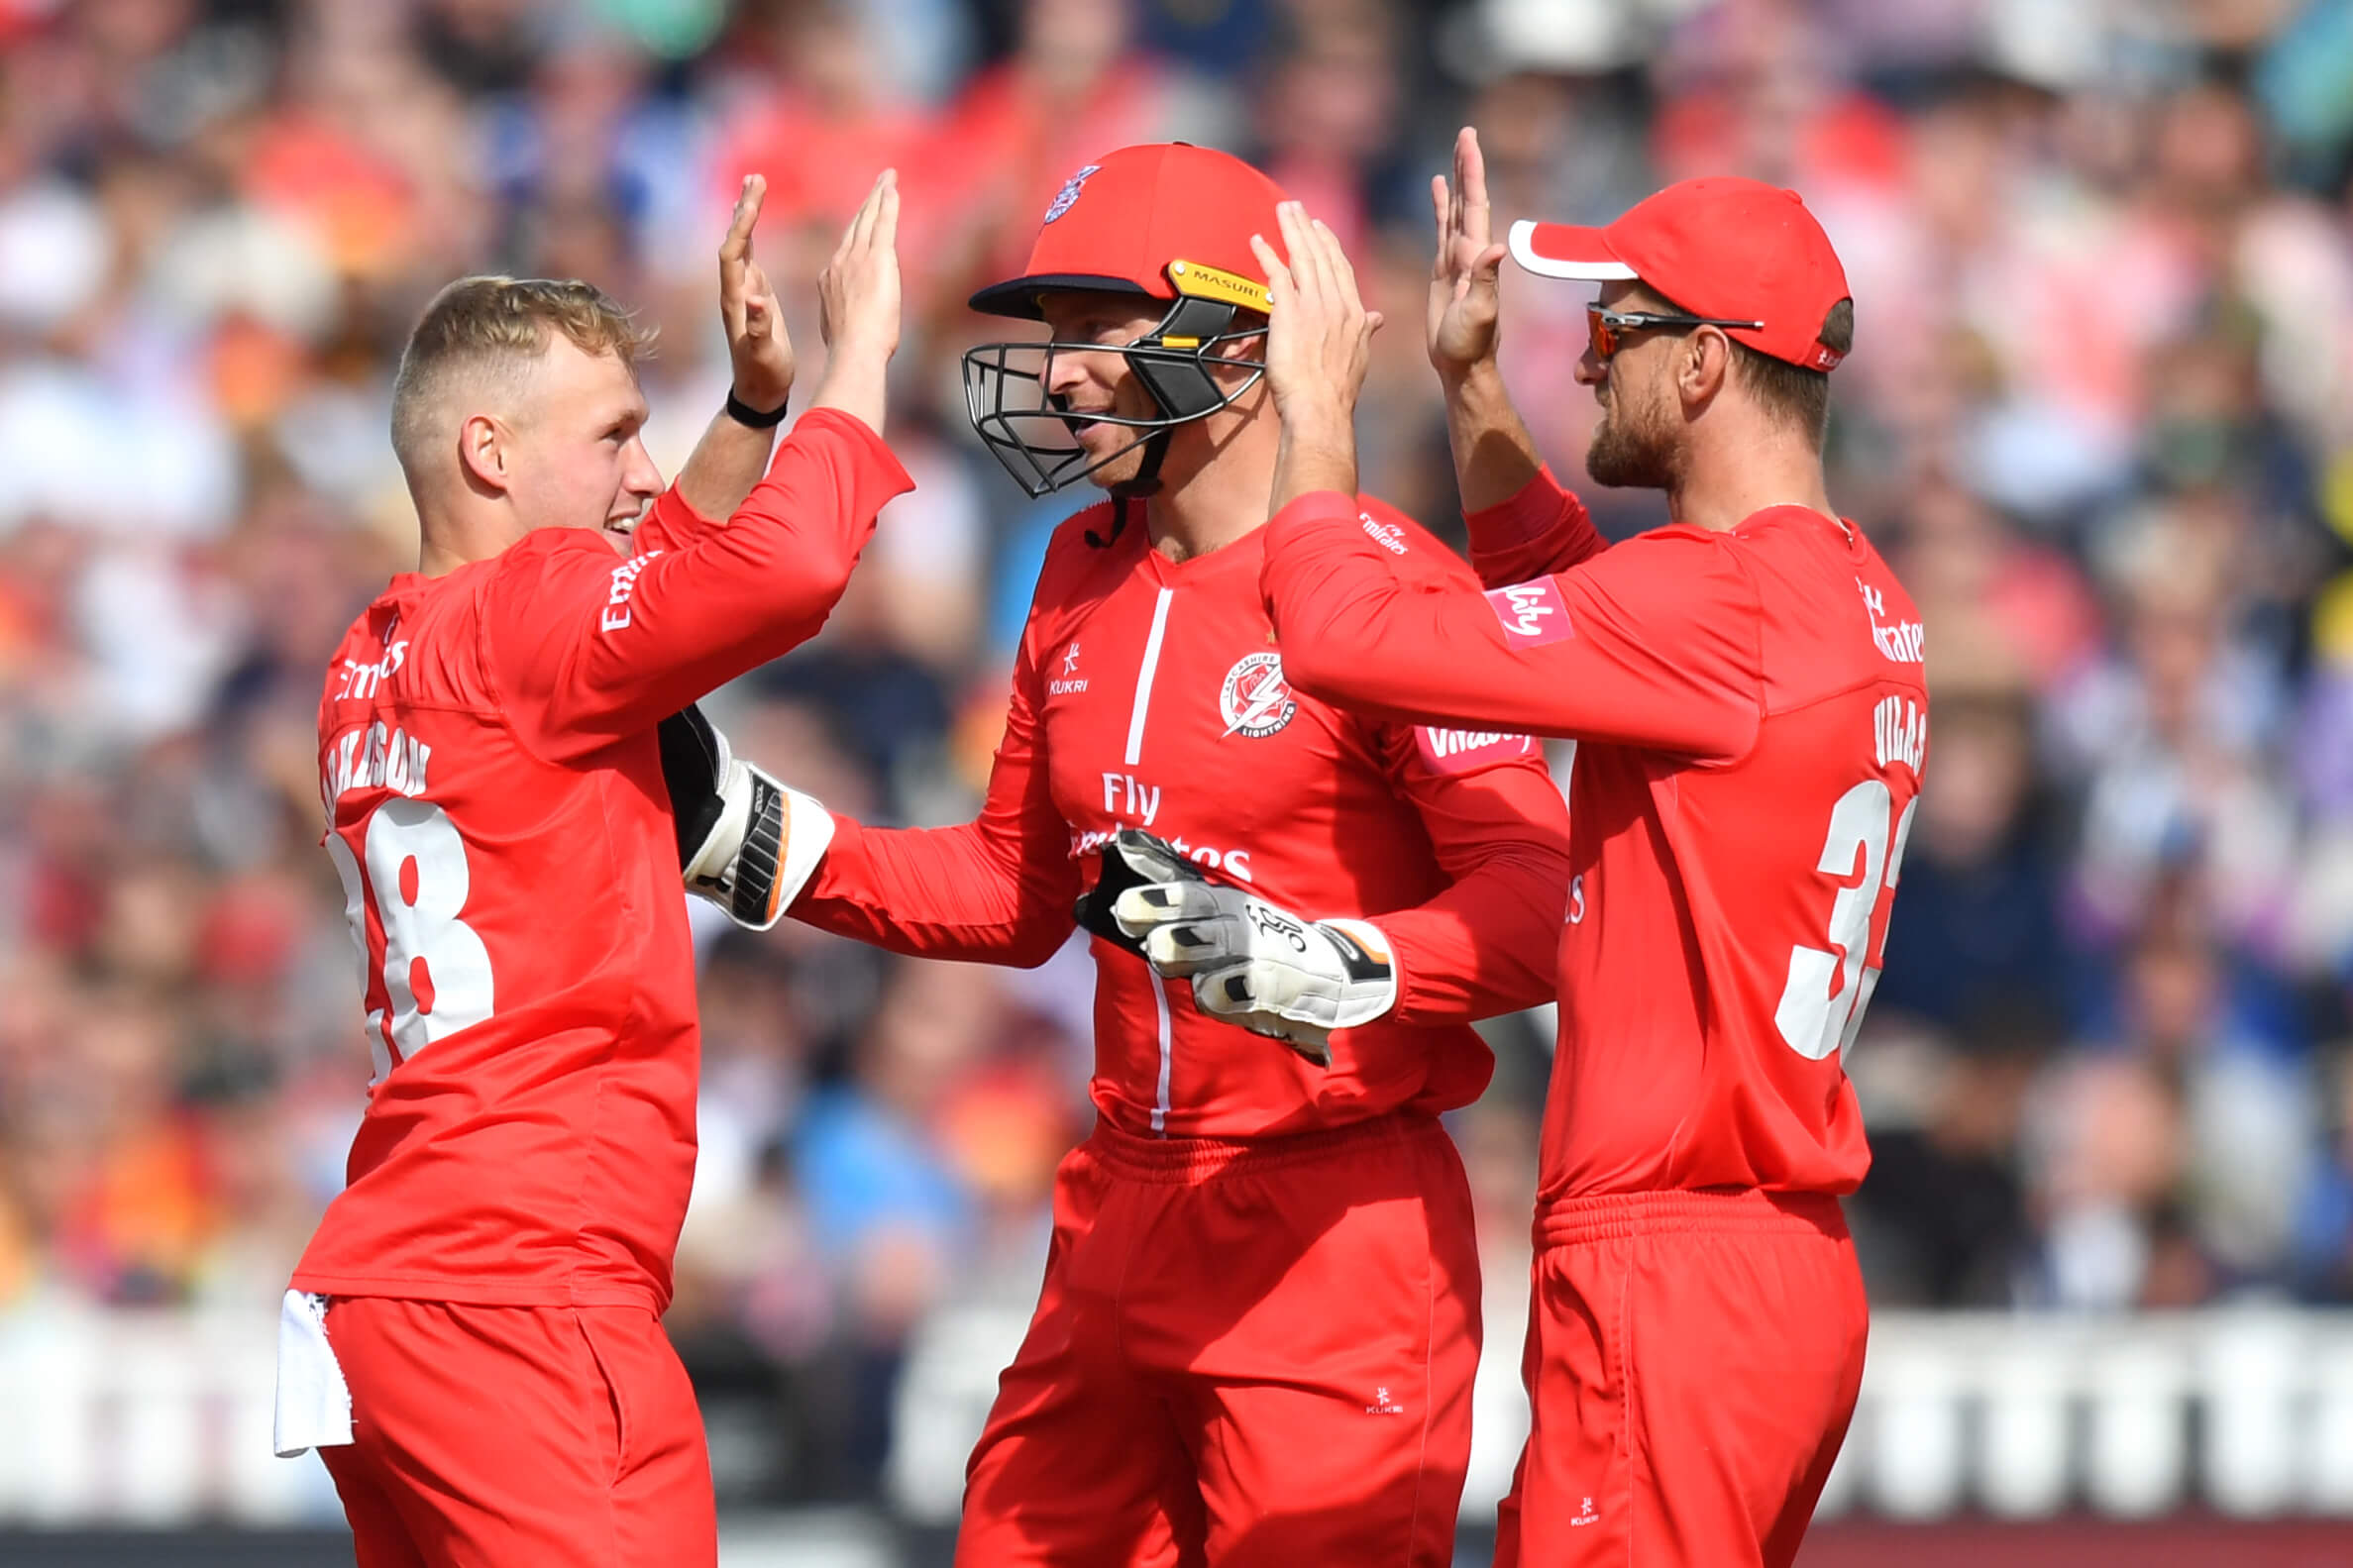 County Cricket Season 2019: Will Lightning strike twice for Lancashire?